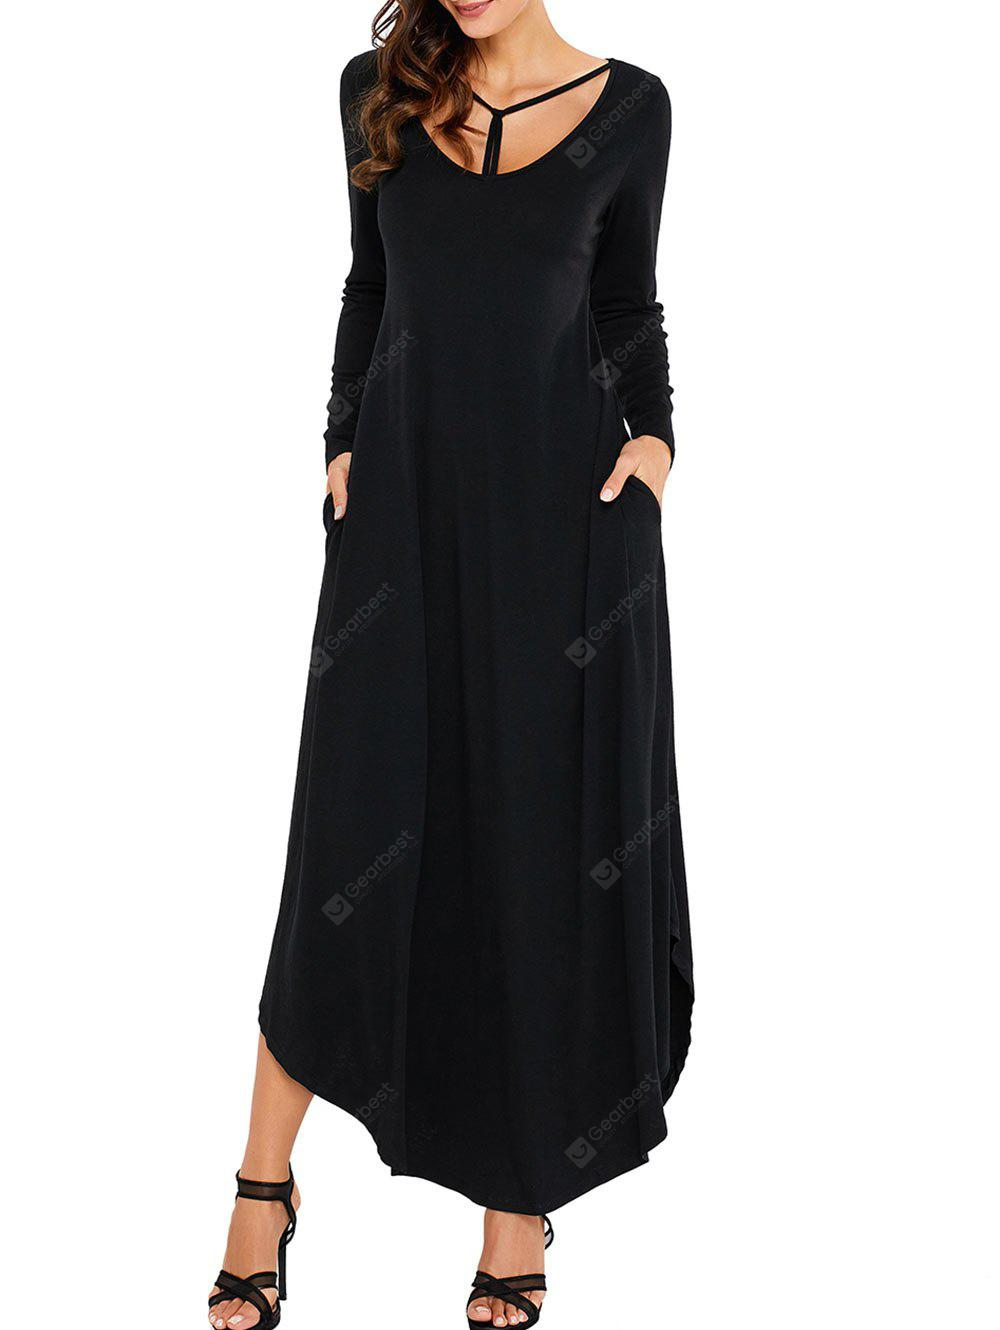 Long Sleeve Scoop Neck Ankle Length Dress